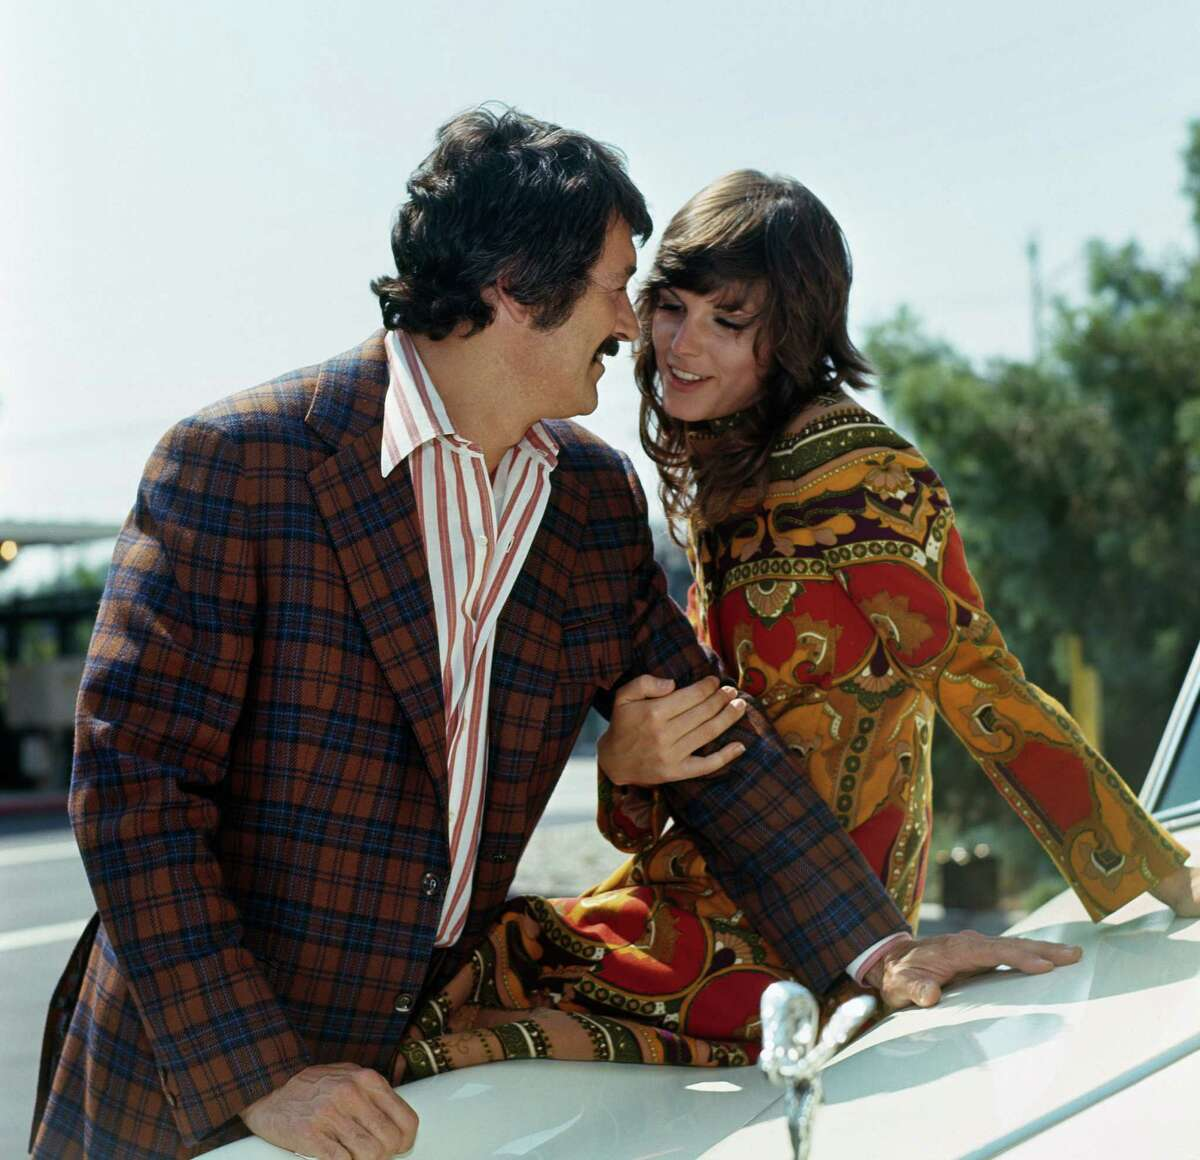 MCMILLAN AND WIFE -- Pictured: (l-r) Rock Hudson as Commissioner Stewart McMillan, Susan Saint James as Sally McMillan -- Photo by: NBCU Photo Bank